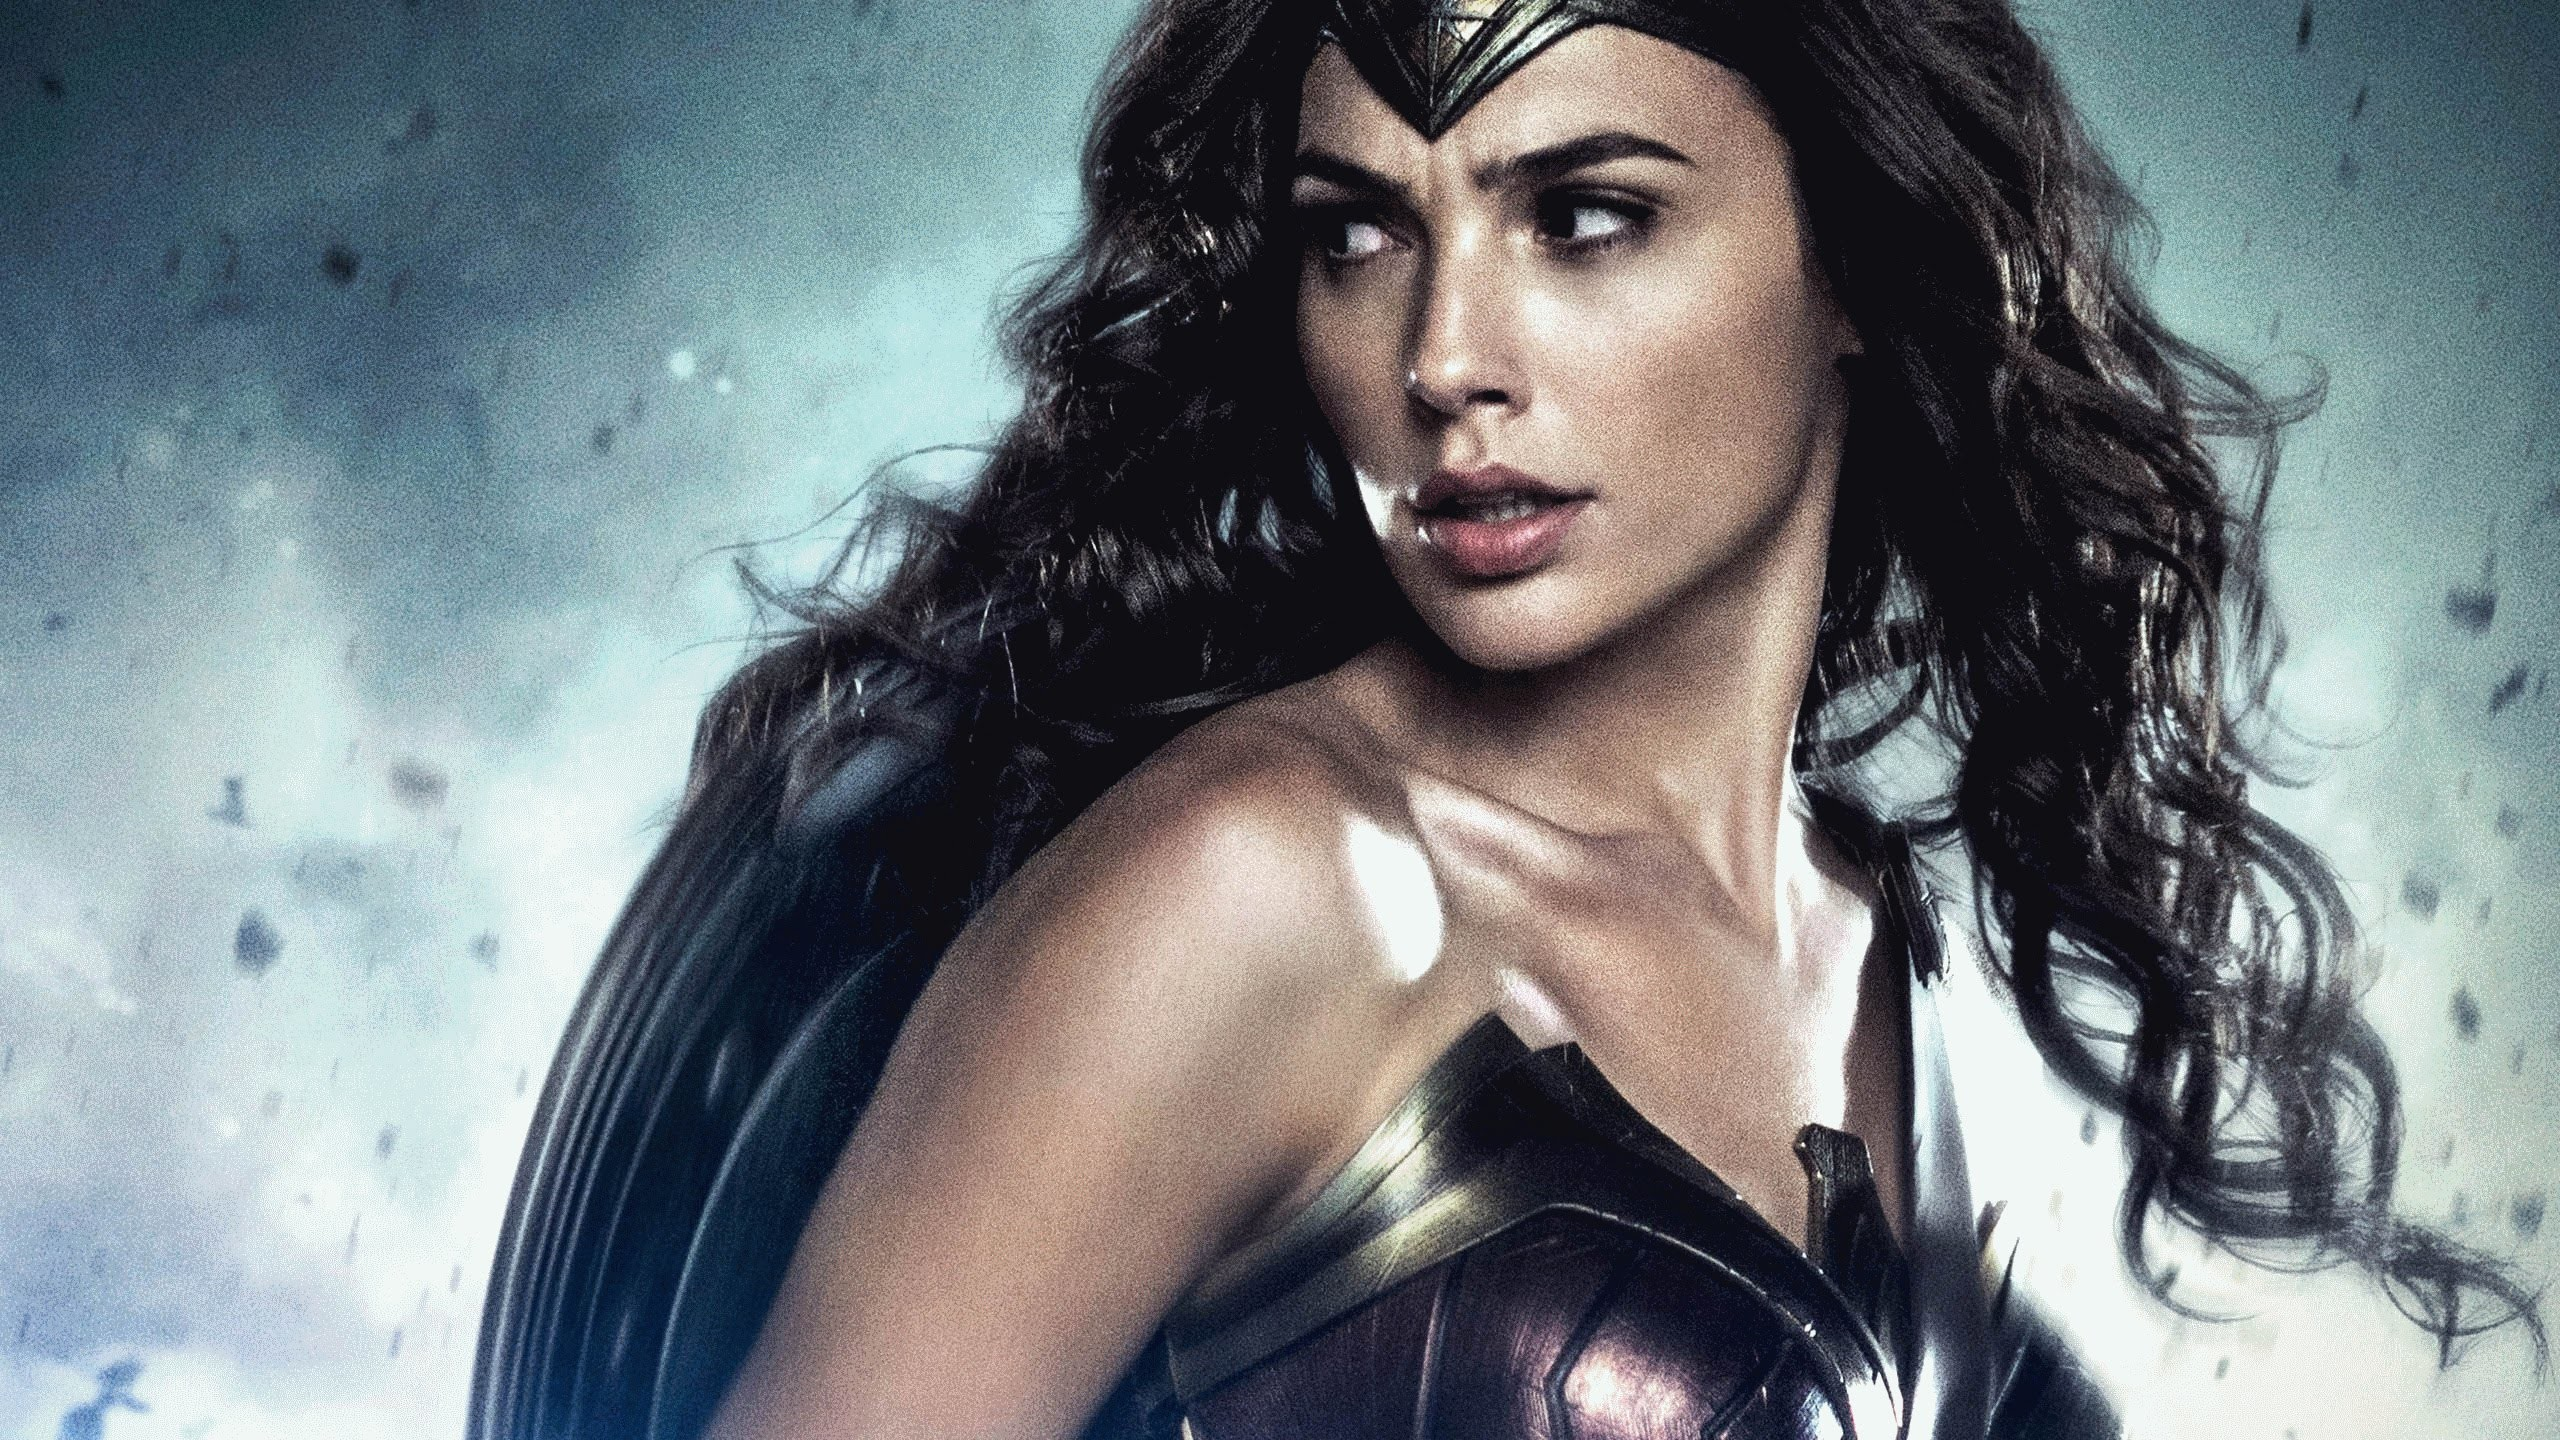 Wonder Woman 7 Movie Wallpapers: Wallpapers And Screensavers Women (68+ Images